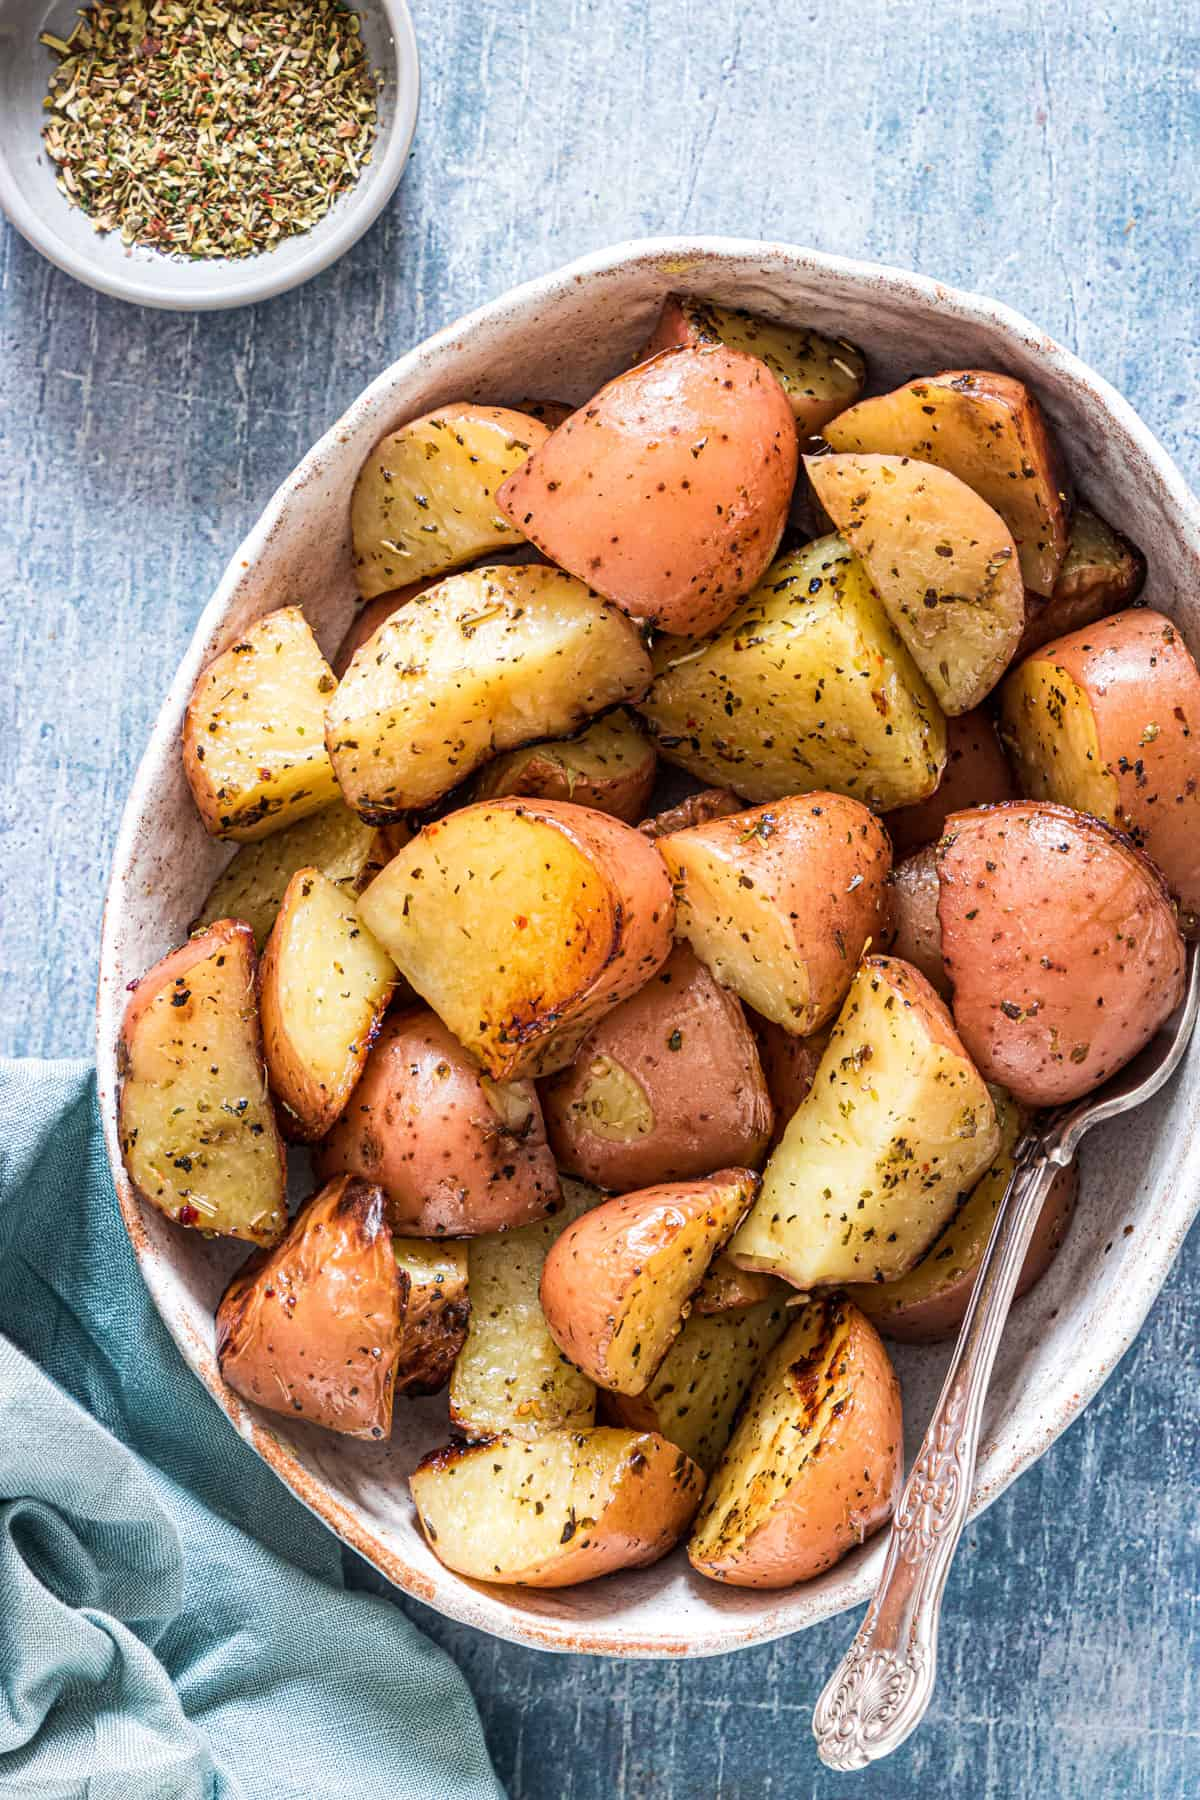 A bowl of cooked red potatoes with some seasoning on the saide